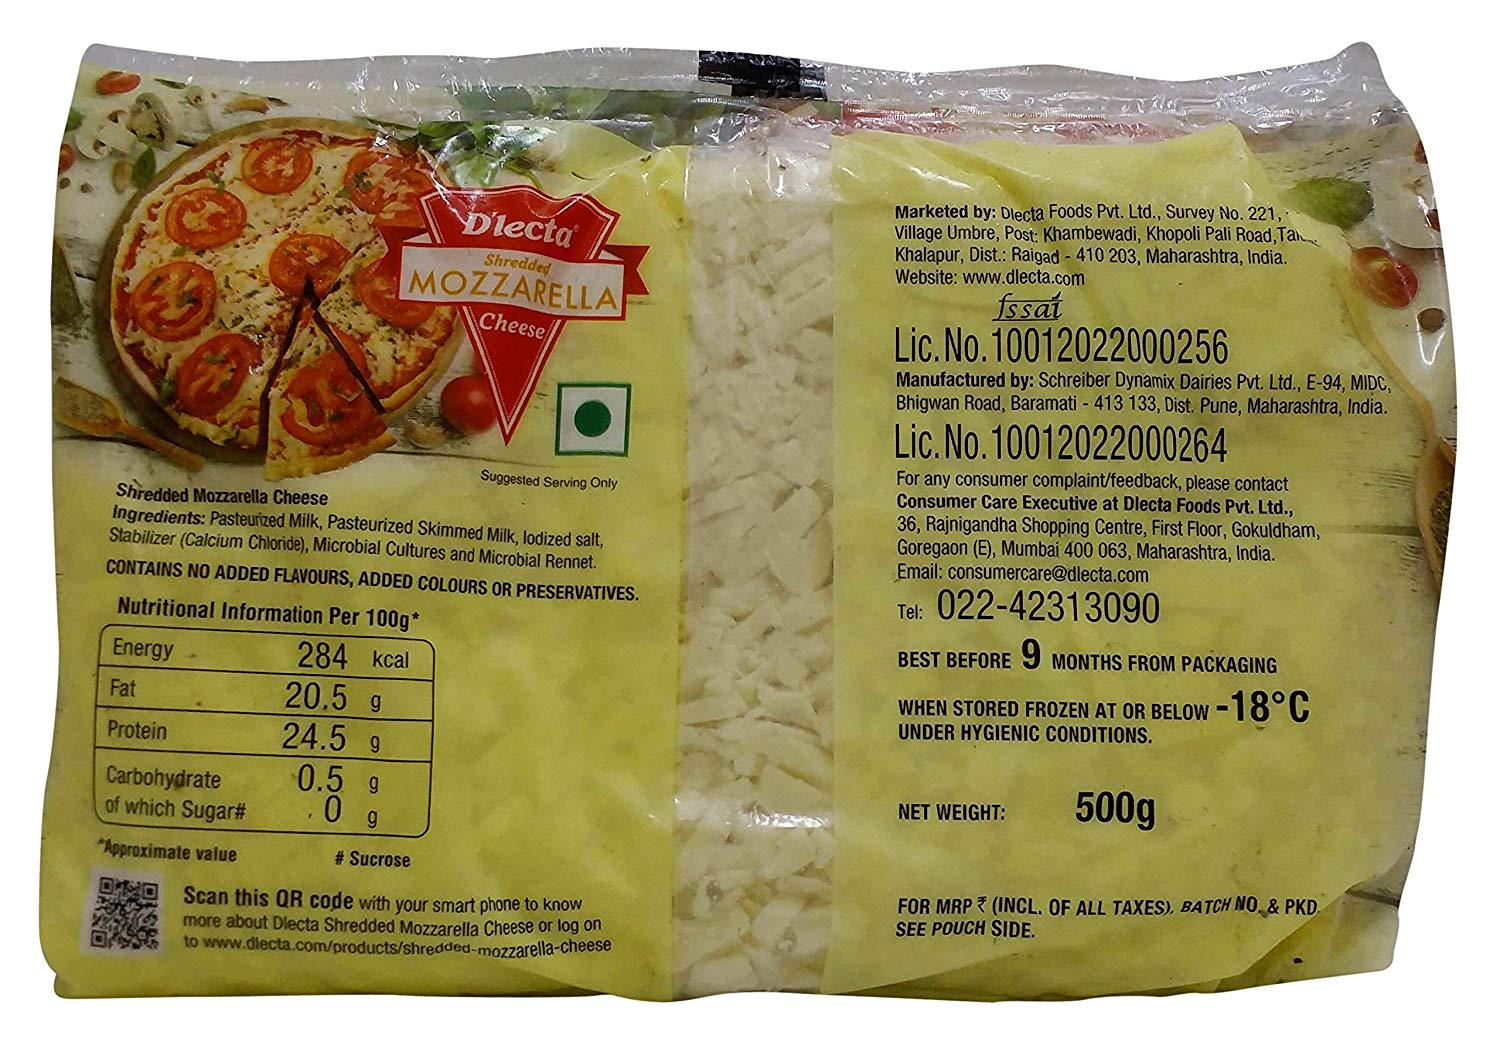 Shredded Mozarella Cheese Image